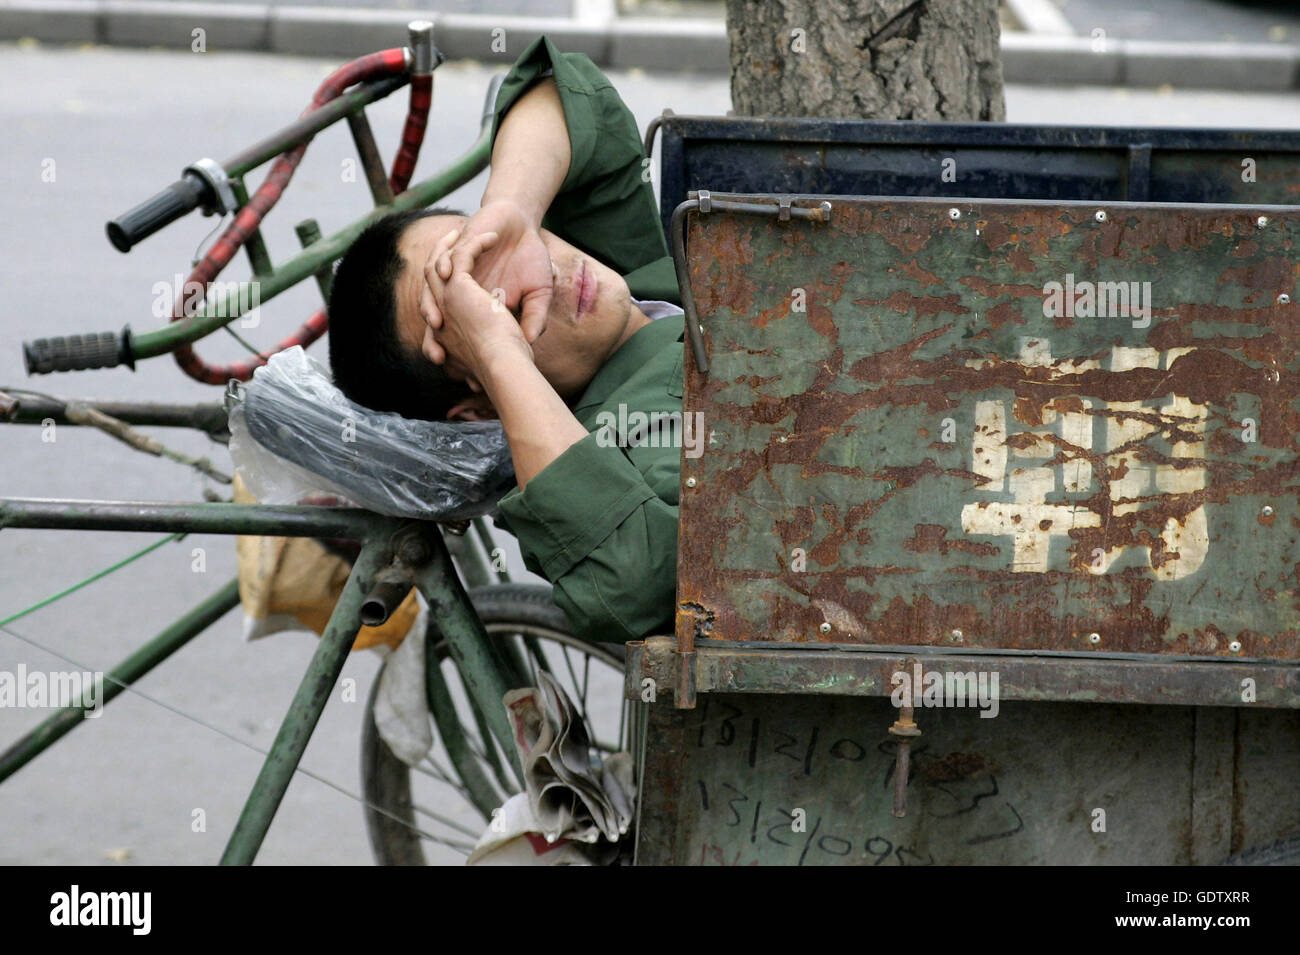 Deep sleep in Beijing - Stock Image